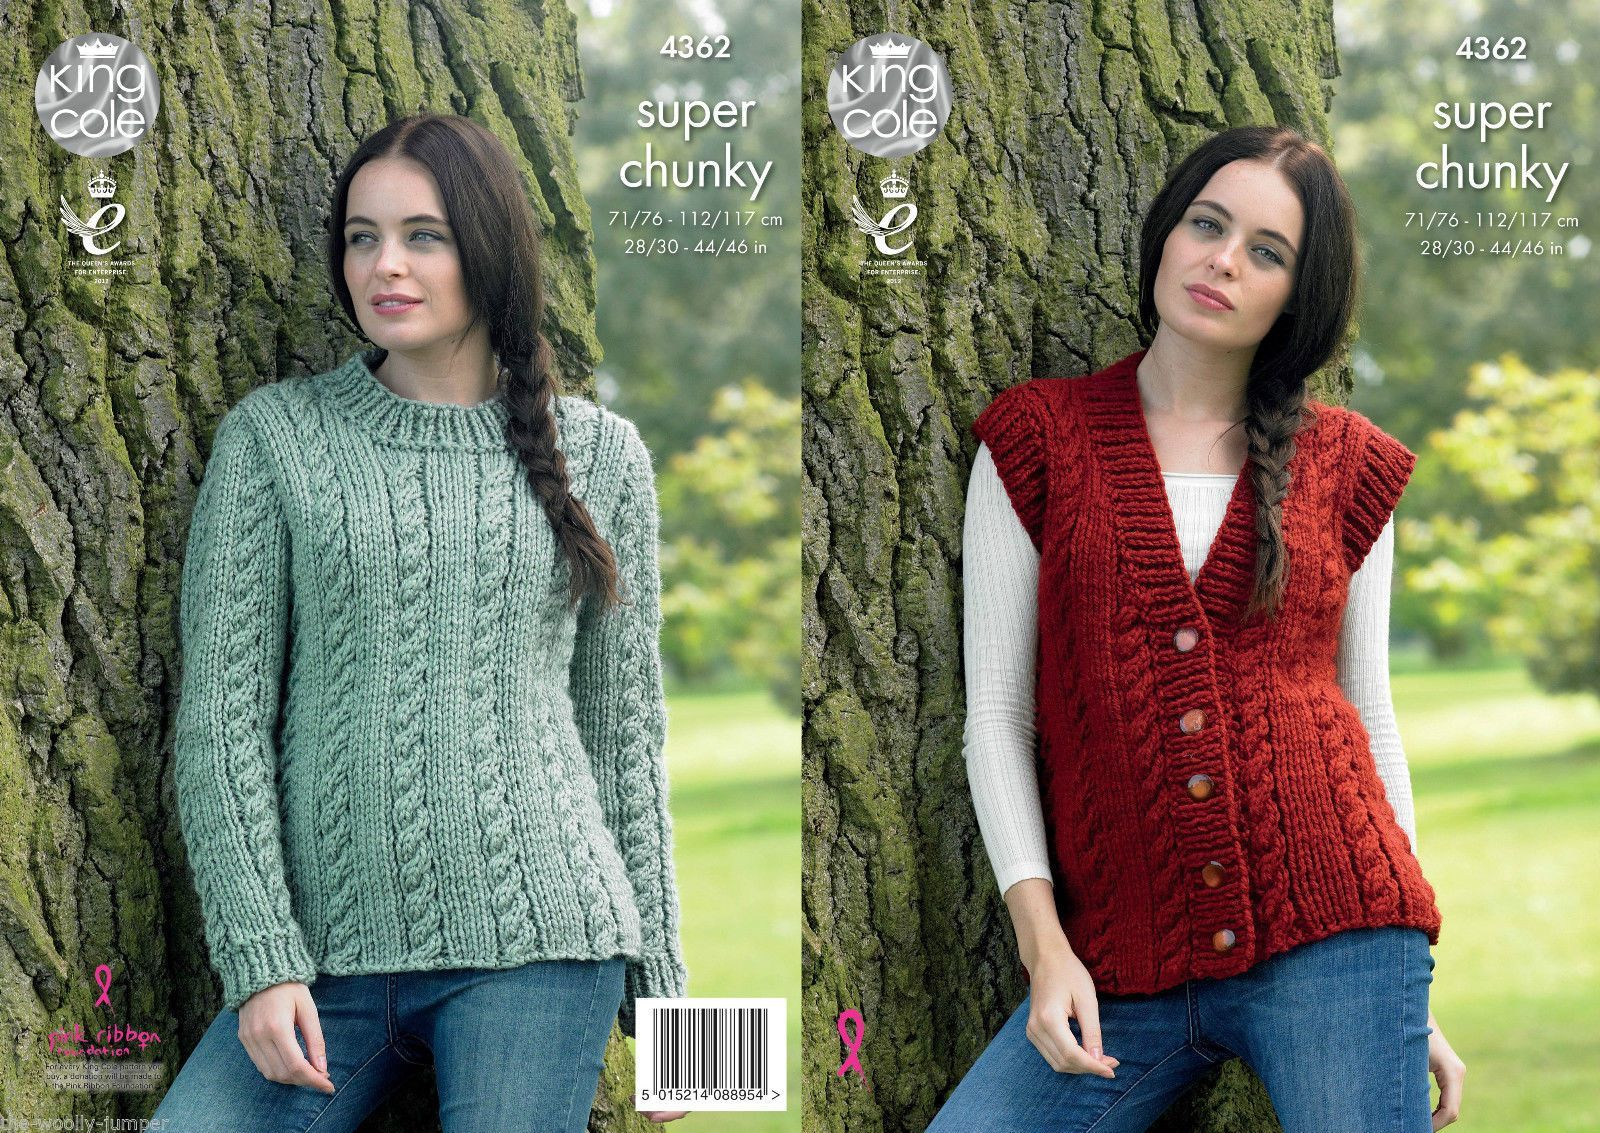 3485a91dfc42 4362 - KING COLE BIG VALUE SUPER CHUNKY SWEATER   WAISTCOAT KNITTING PATTERN  - TO FIT CHEST 28 TO 46